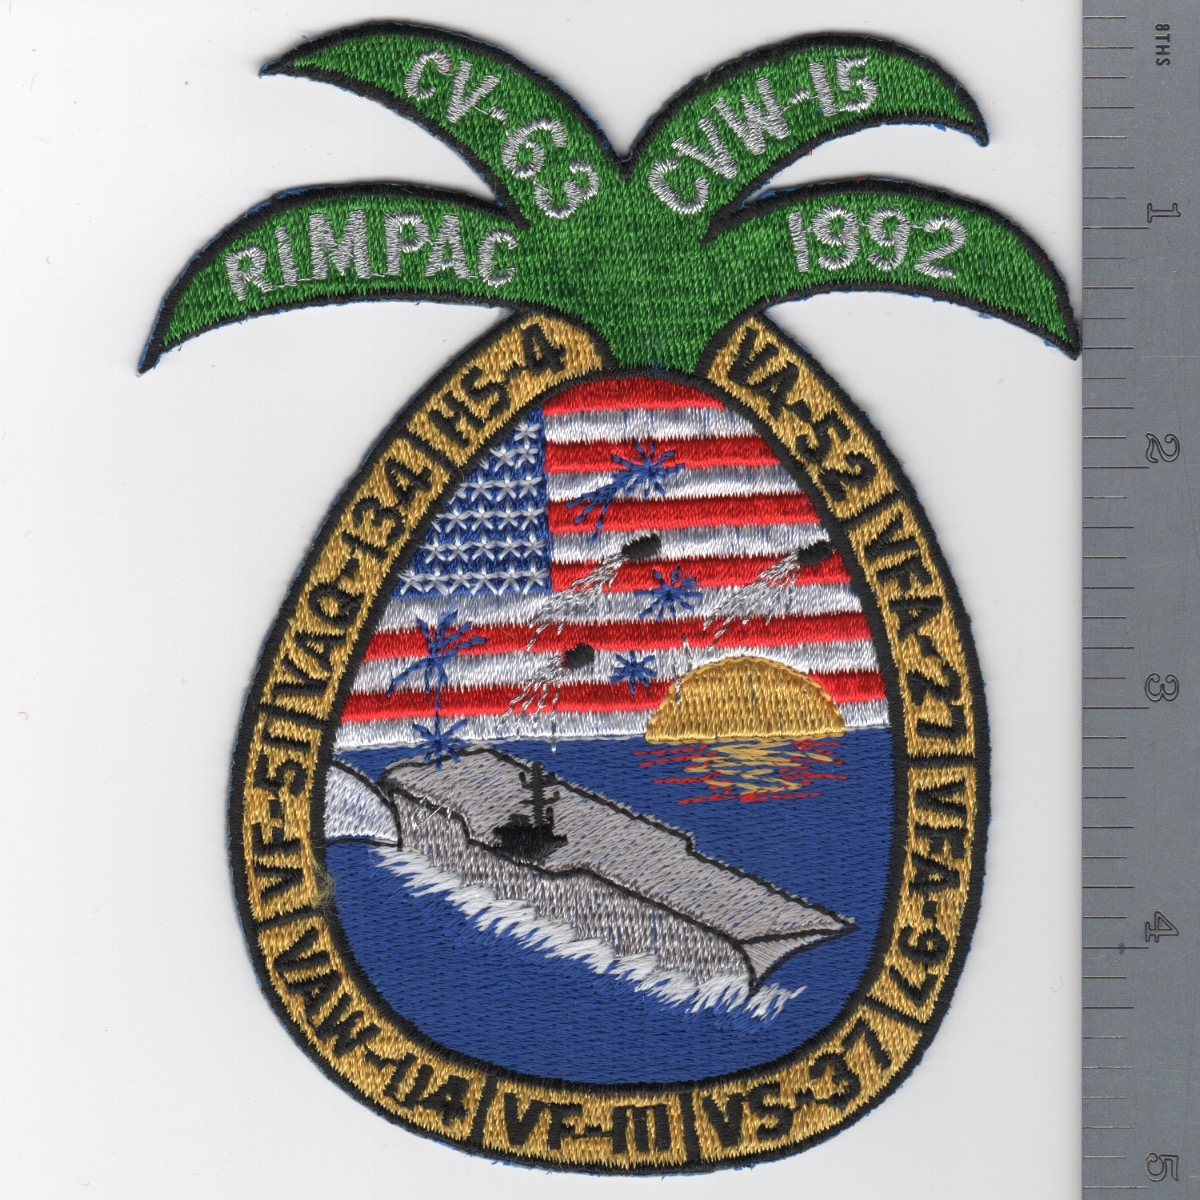 406) CV-63 1992 RIMPAC Cruise Patch